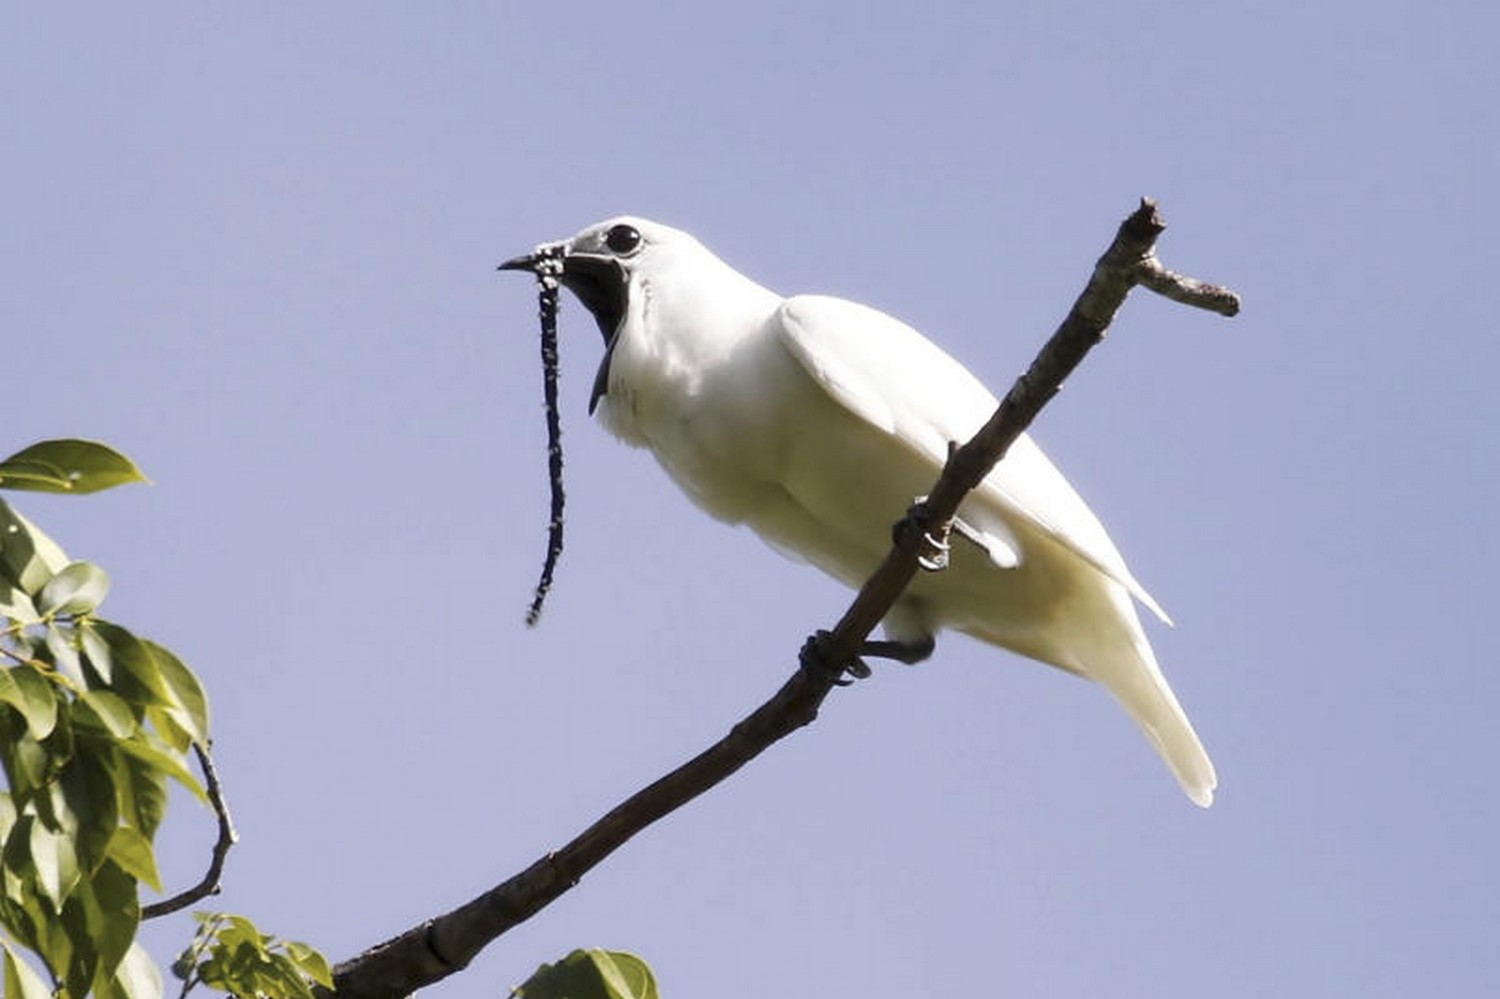 The male white bellbird, which has just beaten out its rainforest neighbour, the screaming piha, for the title of the world's loudest bird, according to a new paper published in the journal Current Biology on Oct 21. (Photo and video: Anselmo d'Affonseca)